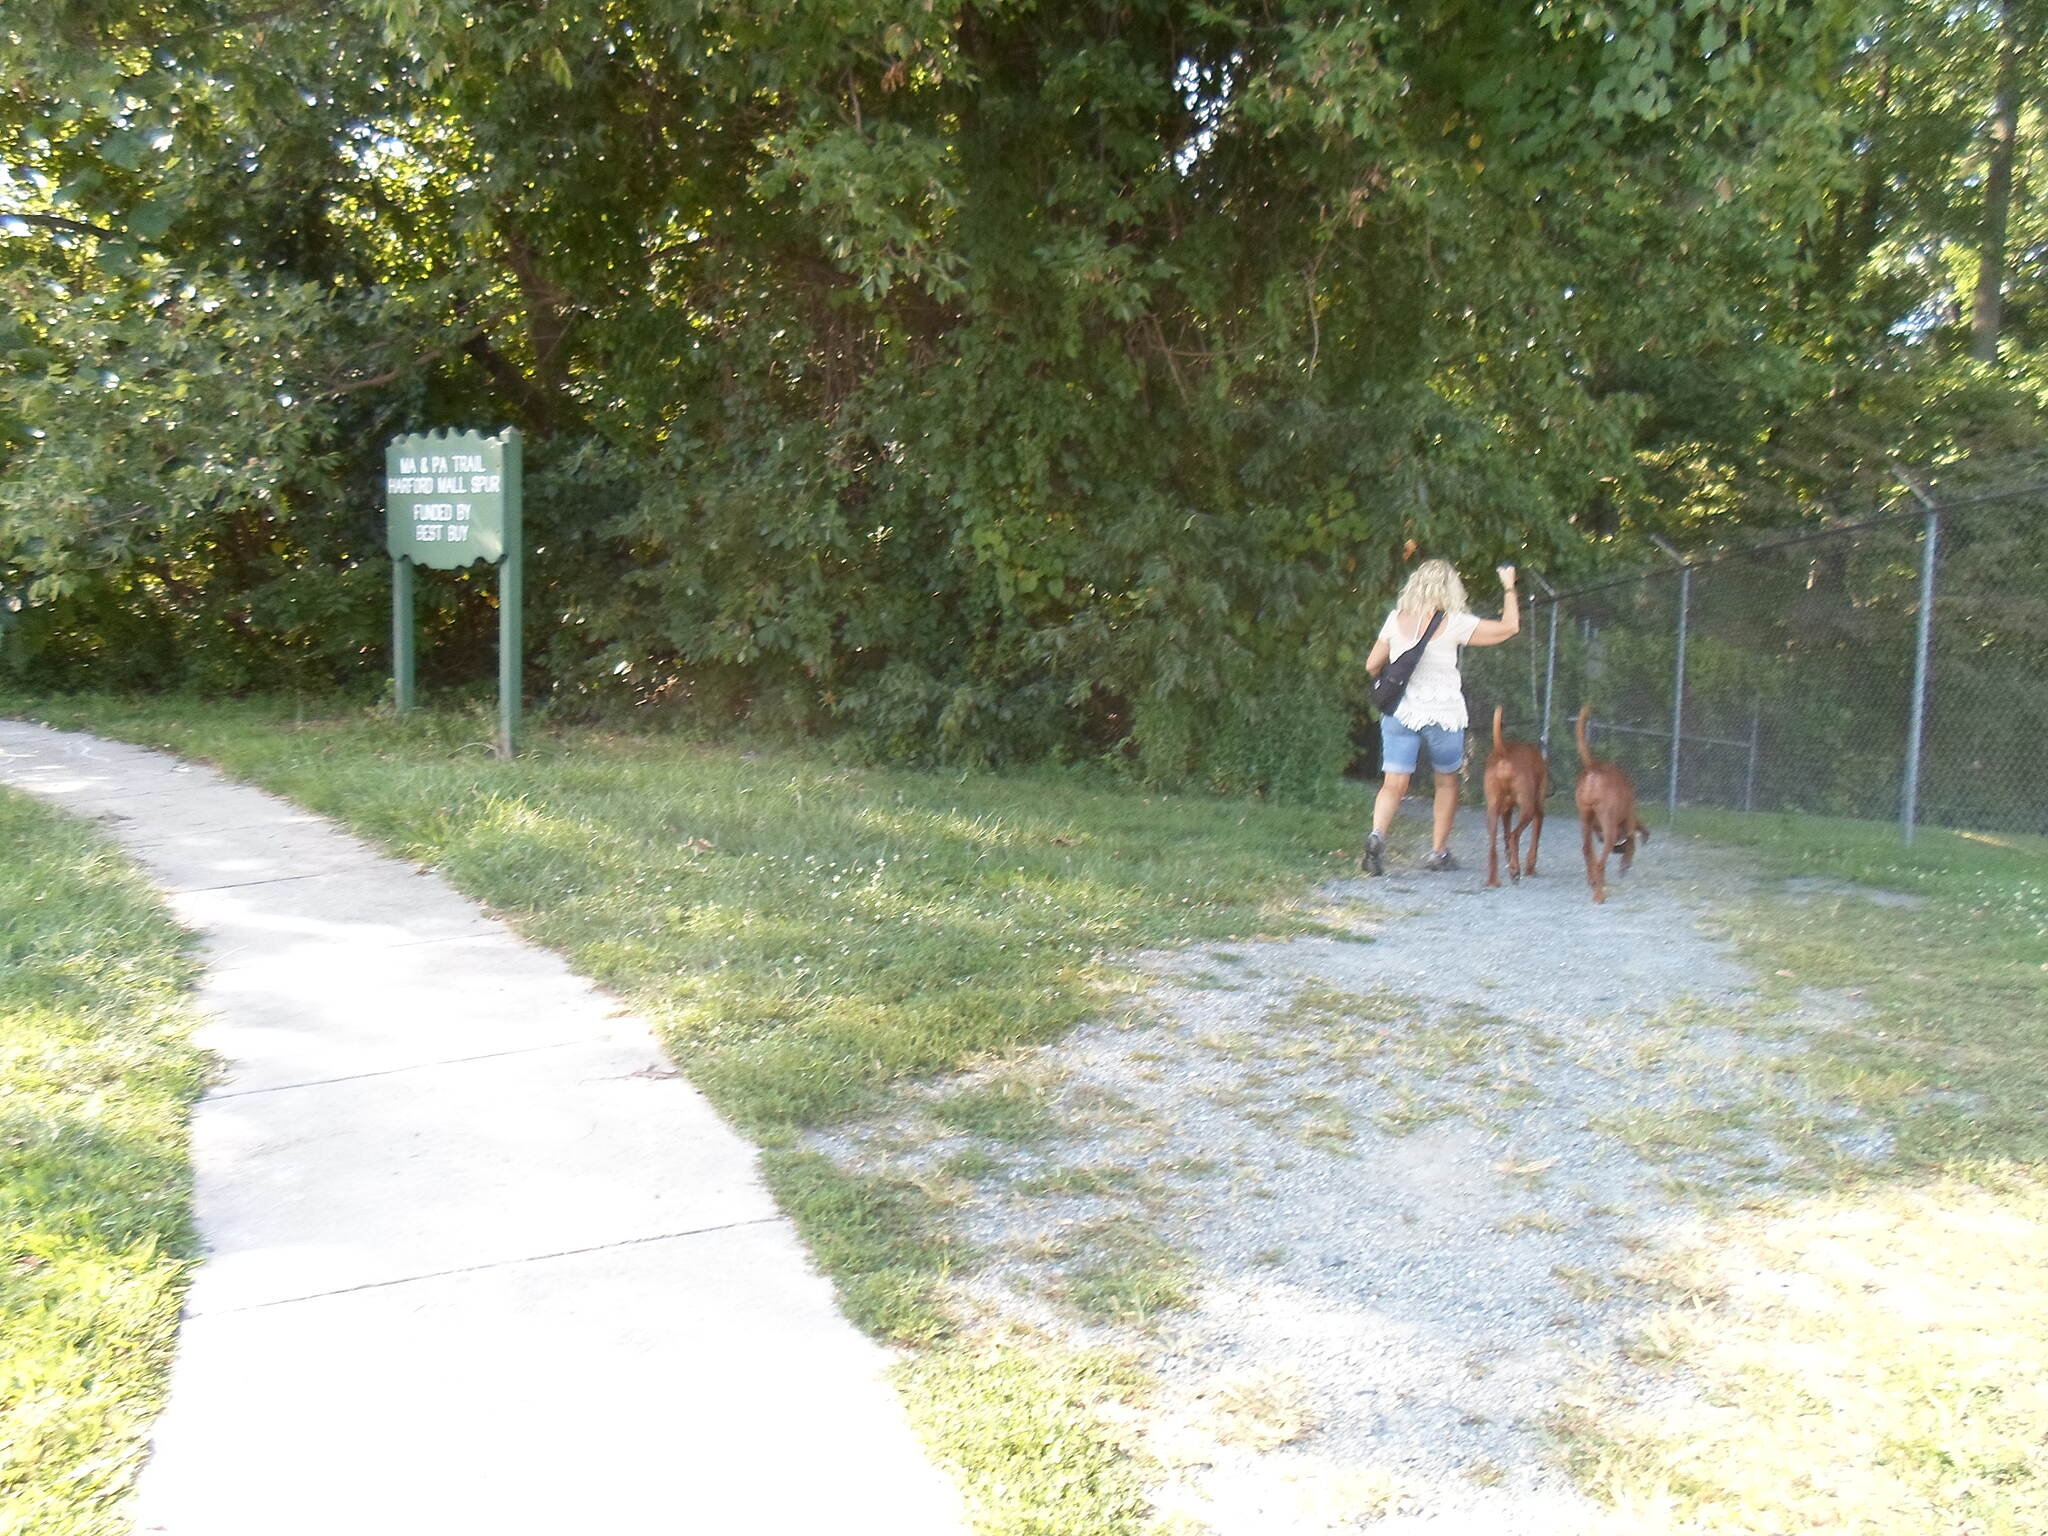 MA & PA Heritage Trail Ma & Pa Heritage Trail This woman and her dogs were accessing the trail via the branch path from Harford Mall. Taken Aug. 2014.